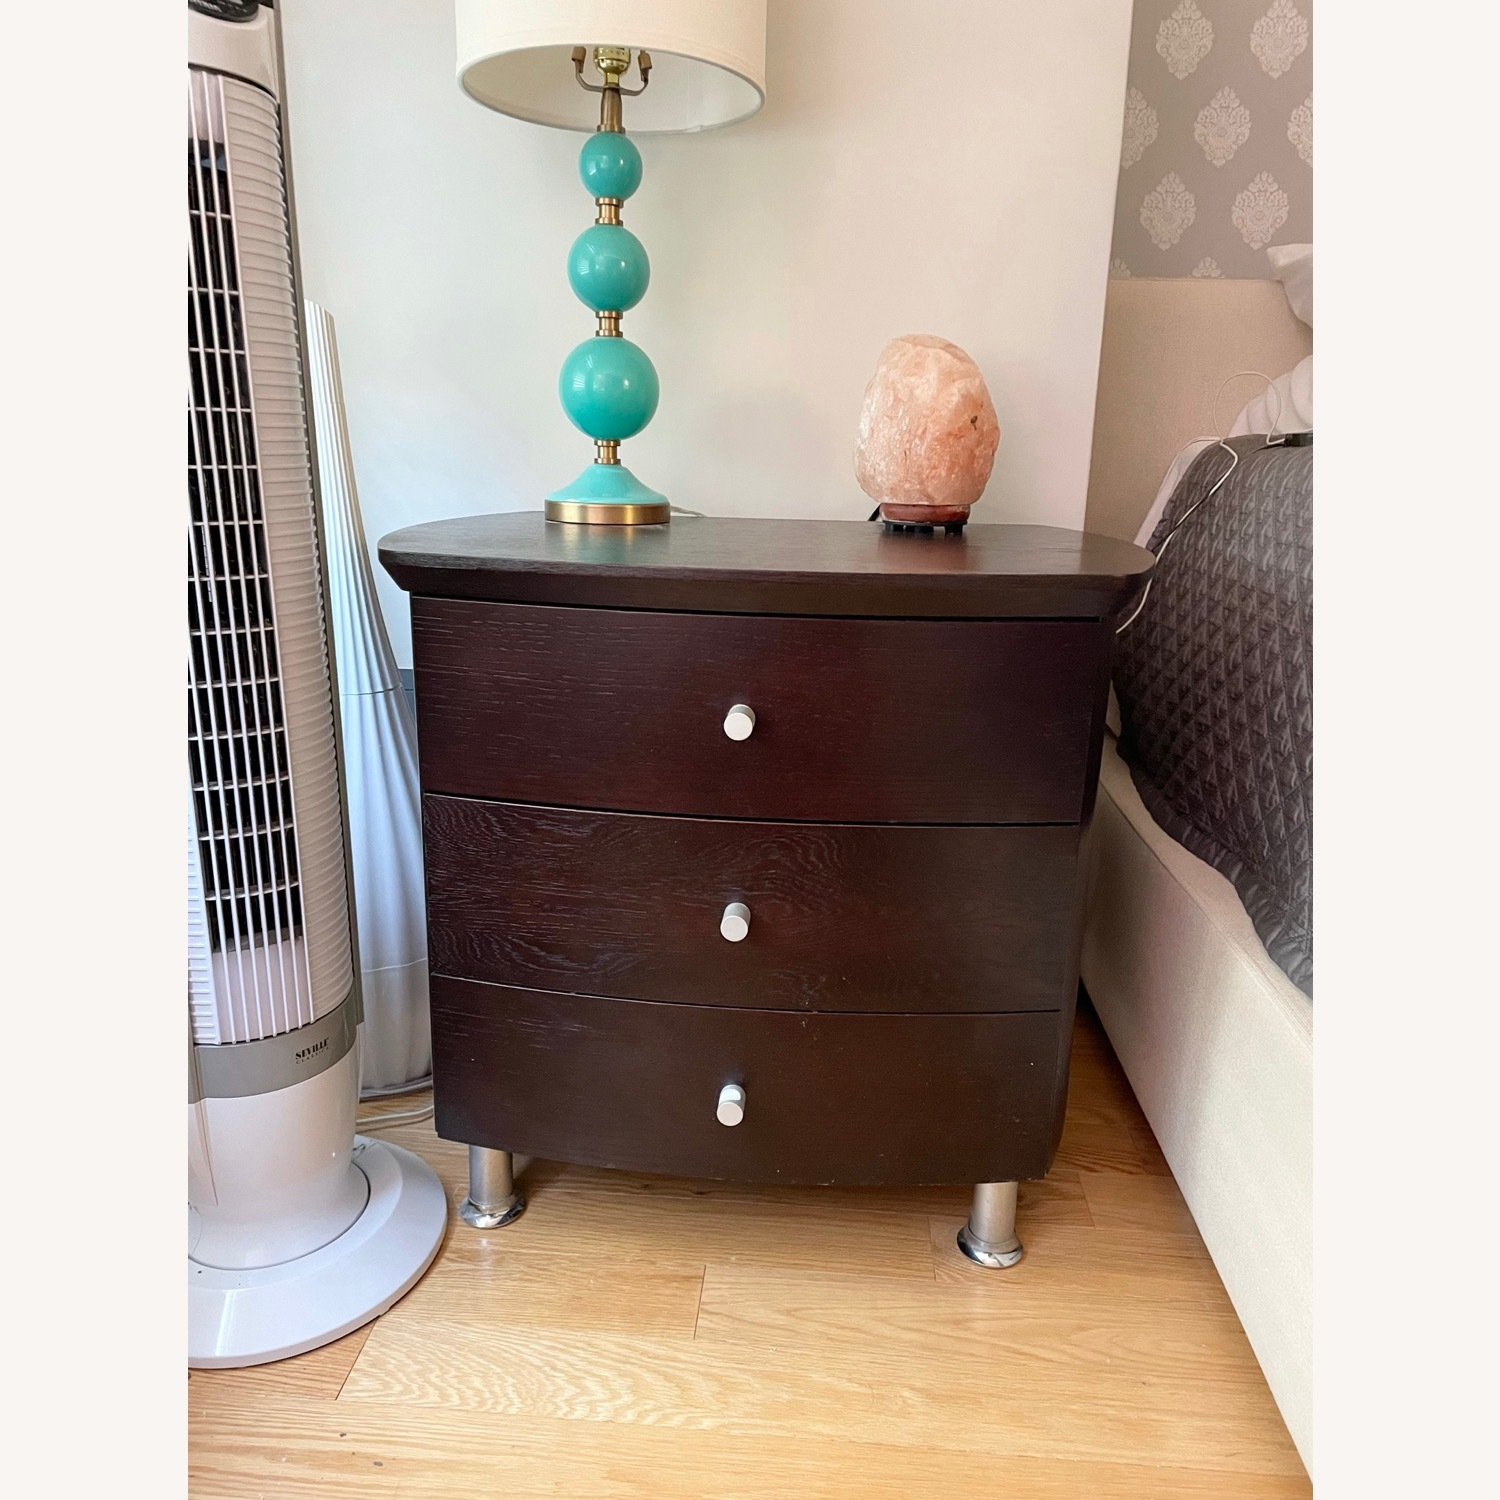 ByDesign 3-Drawer Nightstand with Chrome Legs - image-2